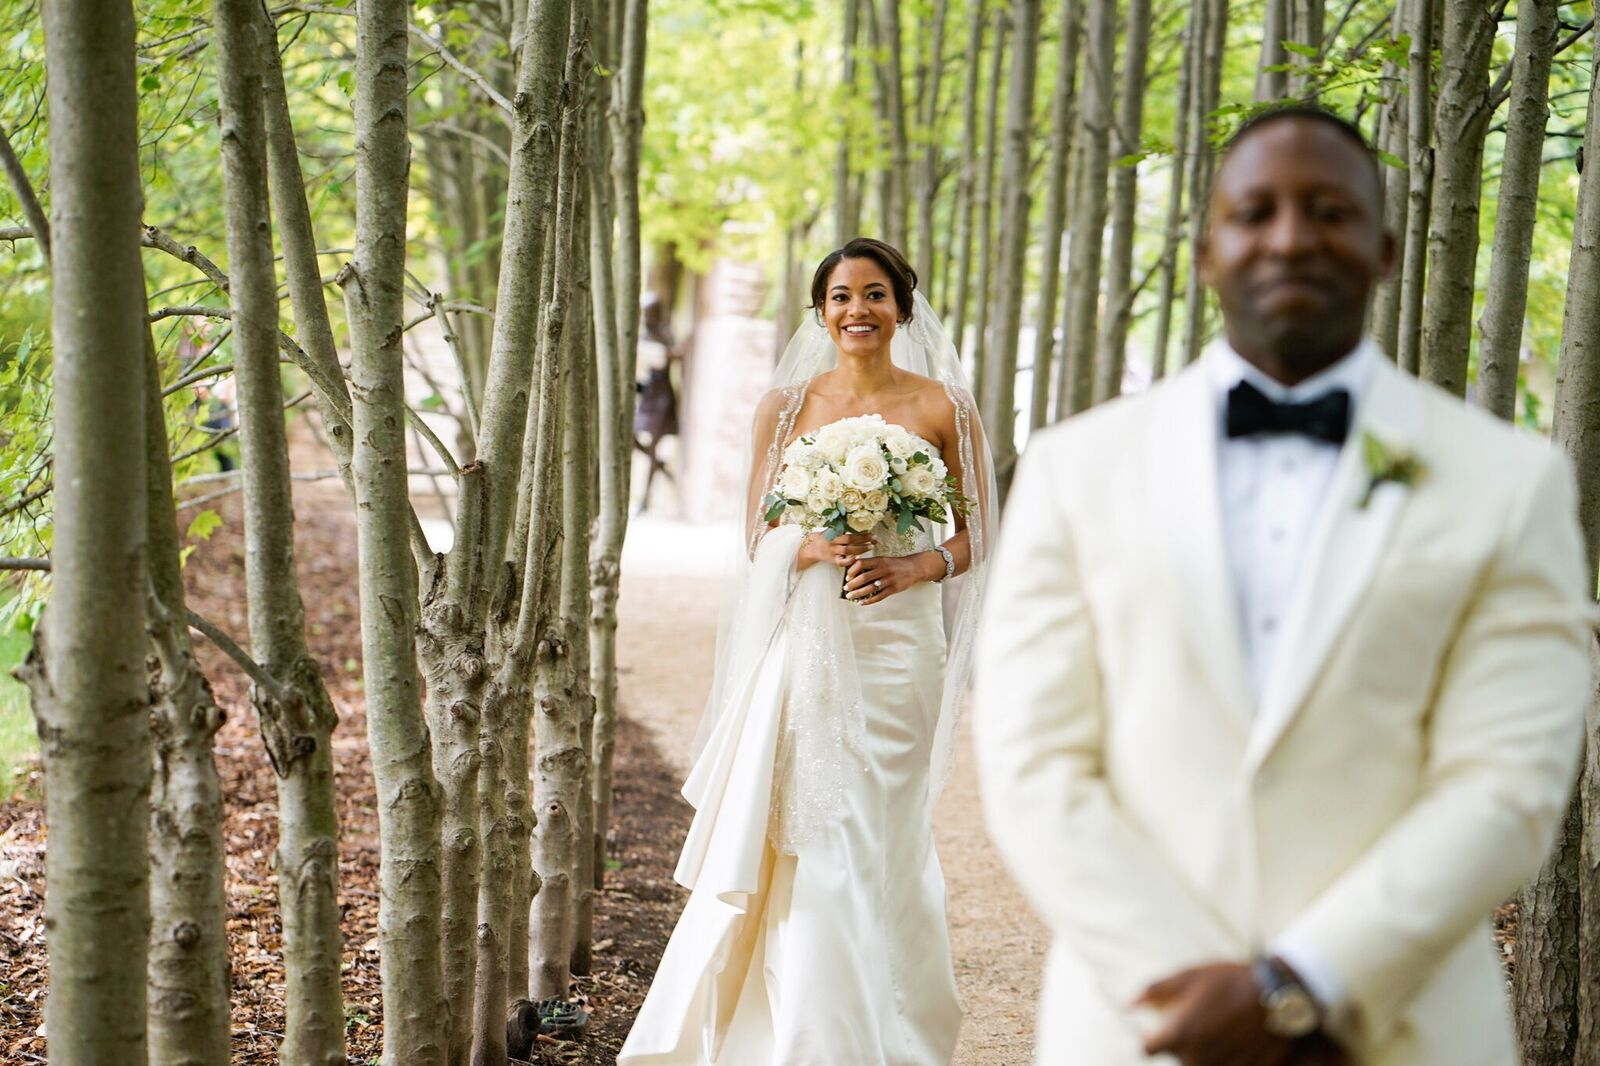 The first look at a wedding has to be perfectly timed and in a great location. Check out this garden wedding we planned and how we kept the public from photobombing this romantic moment!